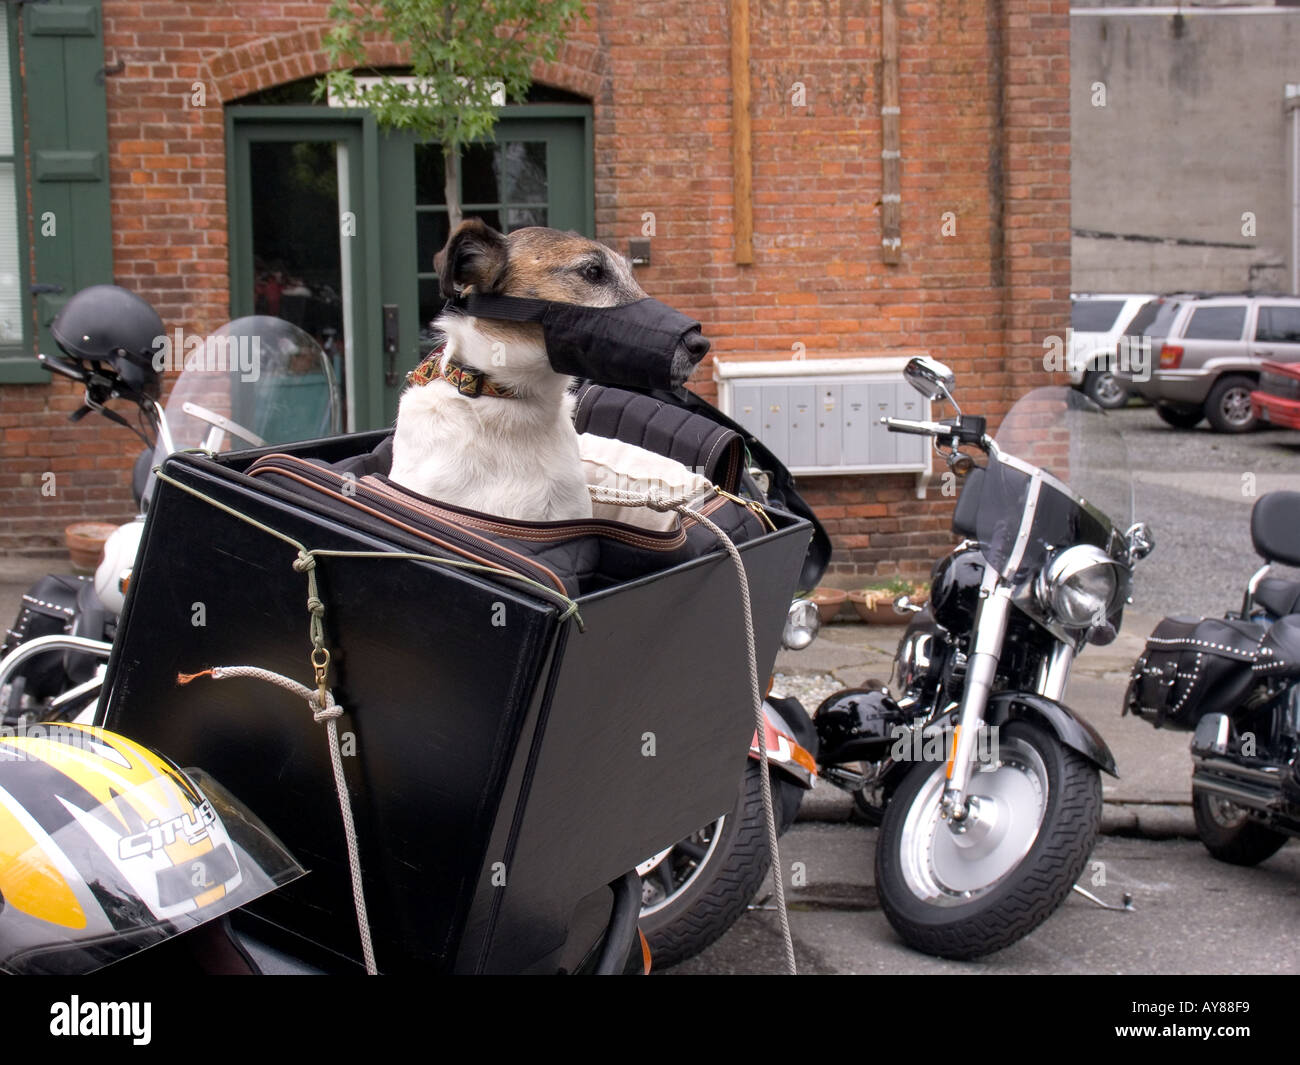 Small dog in special carrier on motorcycle - Stock Image